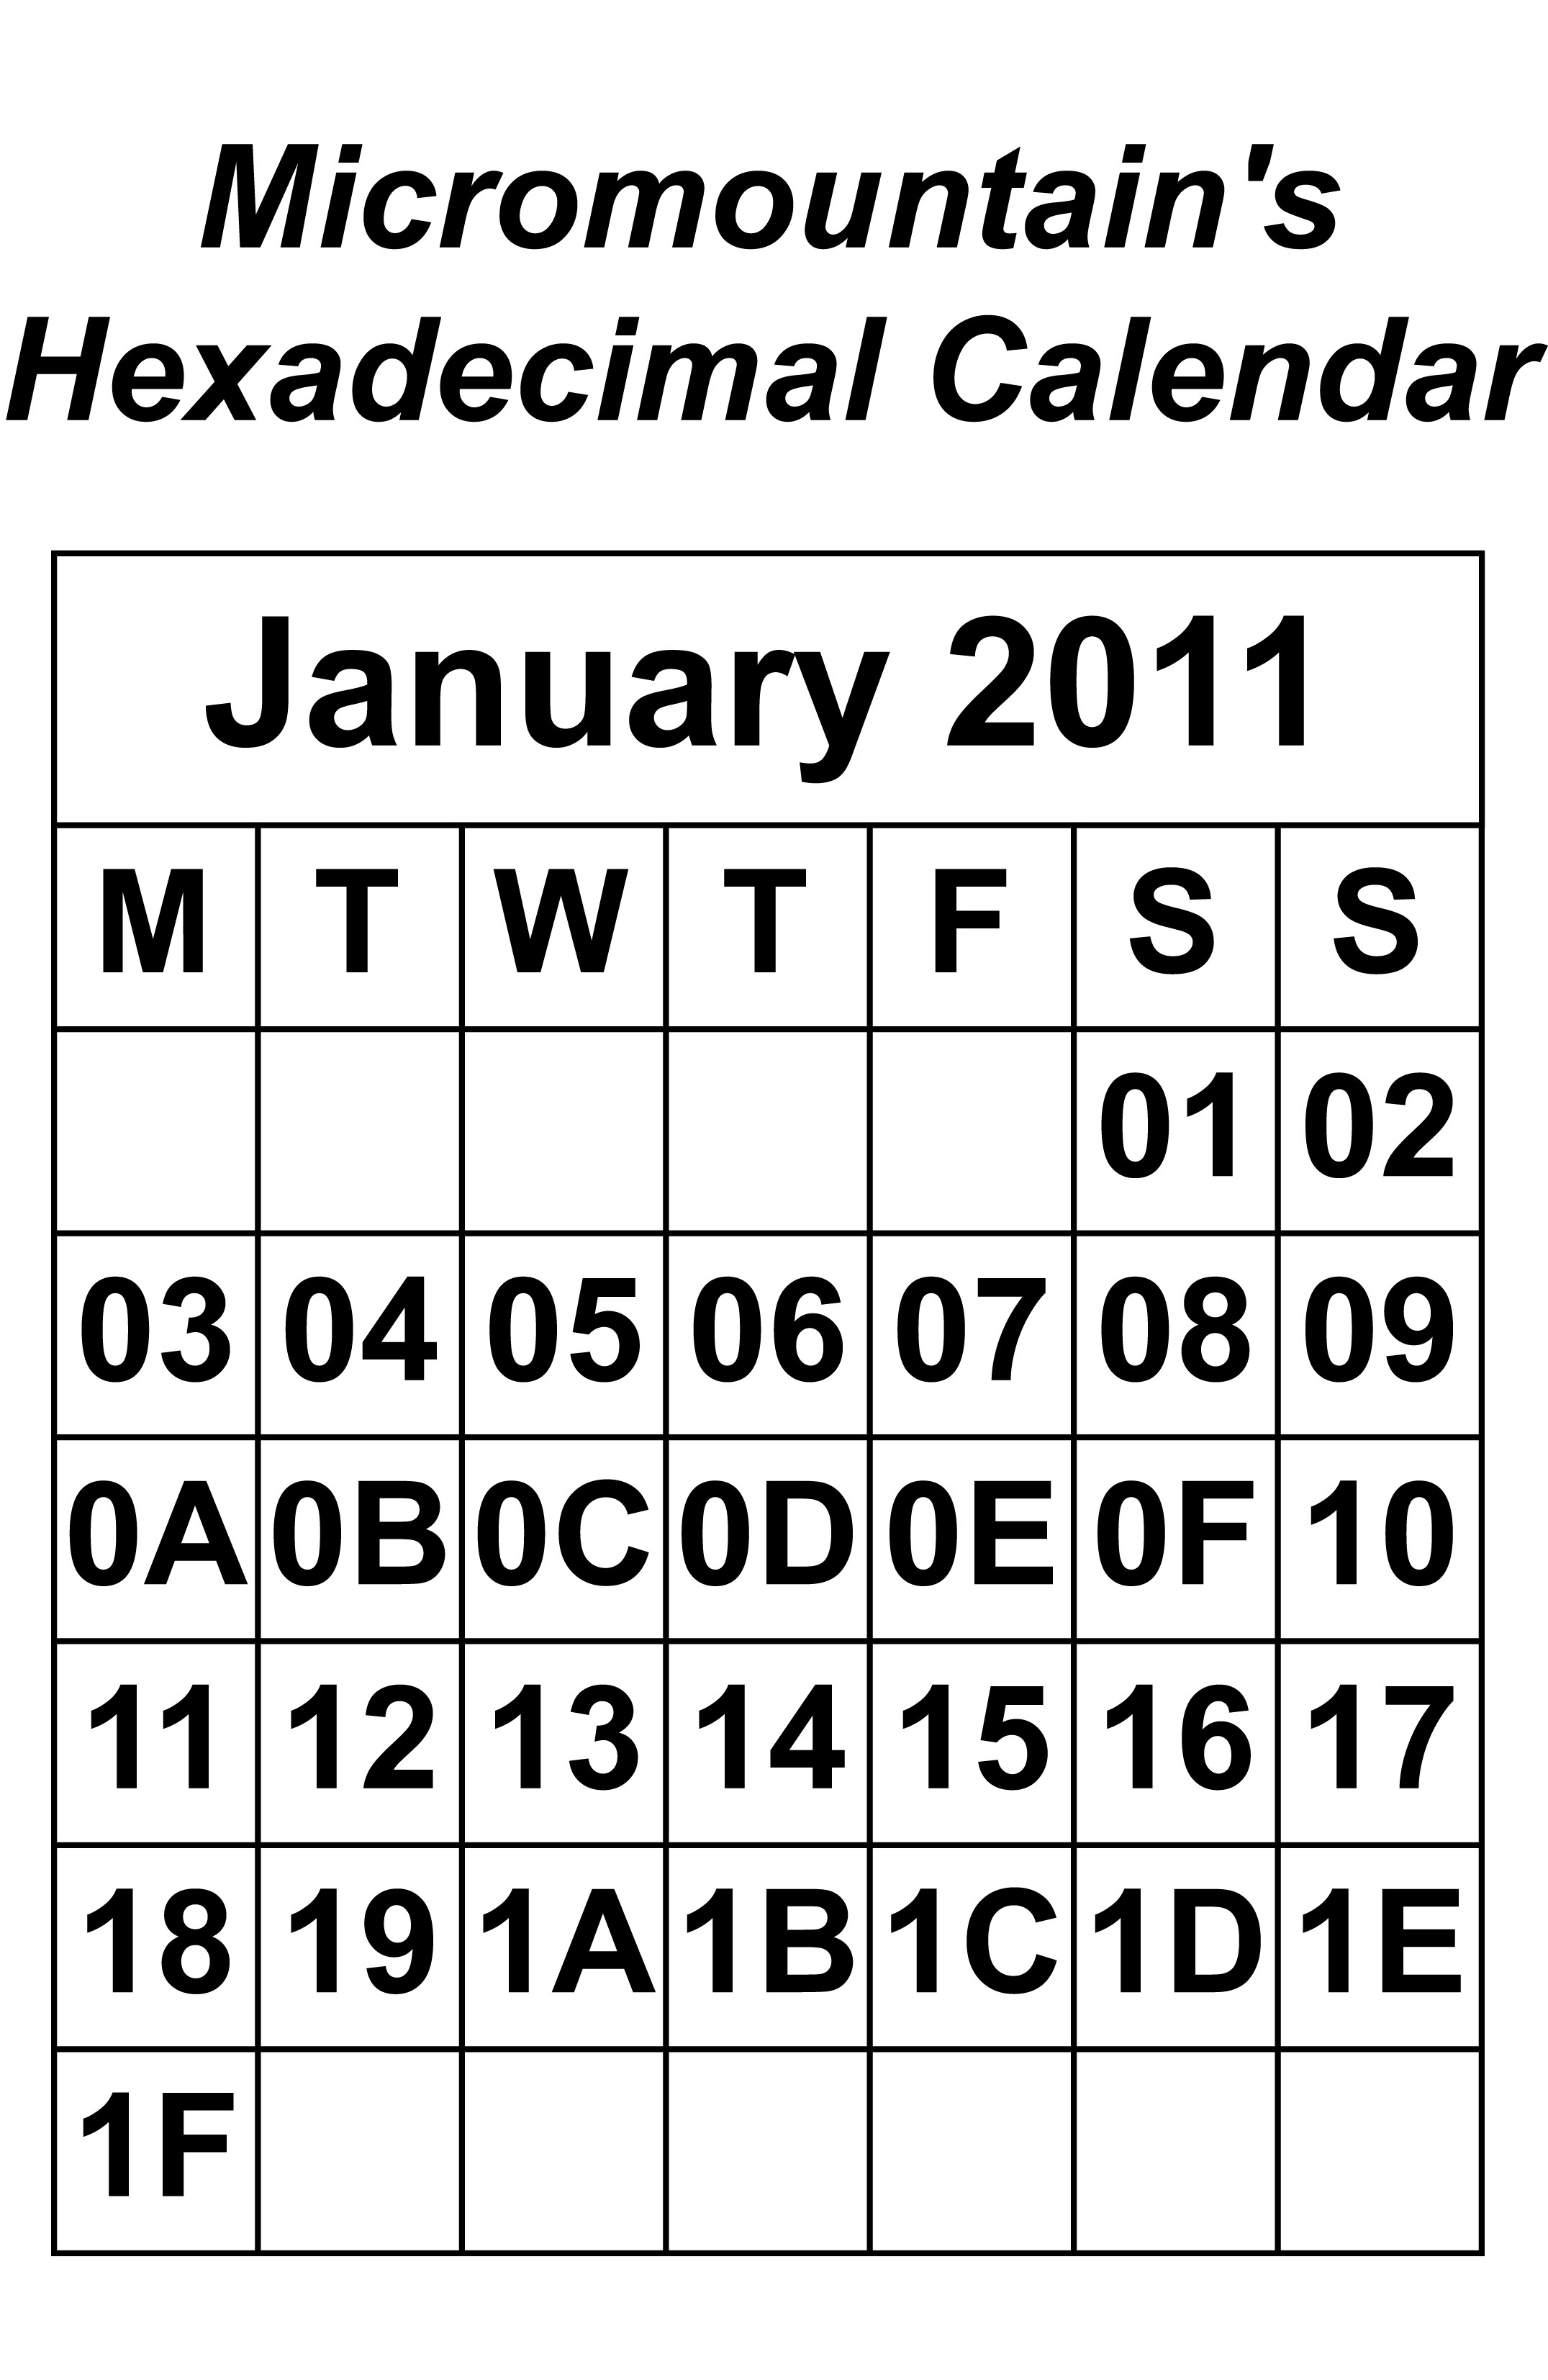 January February March Calendar Más Recientes Hexadecimal Calendar A4 Of January February March Calendar Más Caliente Baptism Seminar for Parents and Godparents Our Lady Of Peace